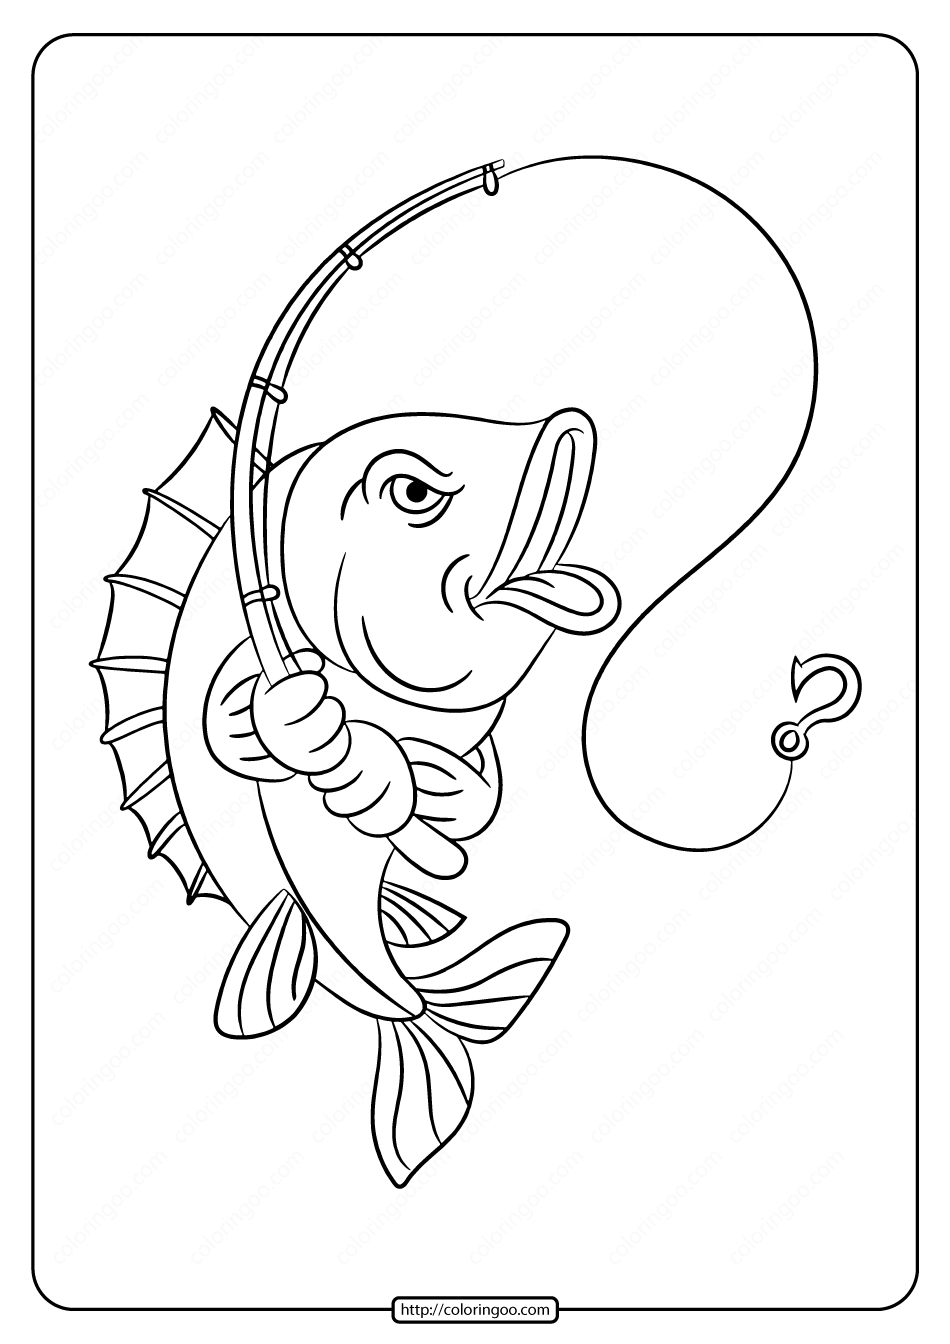 Printable Fish with Fishing Rod Coloring Pages